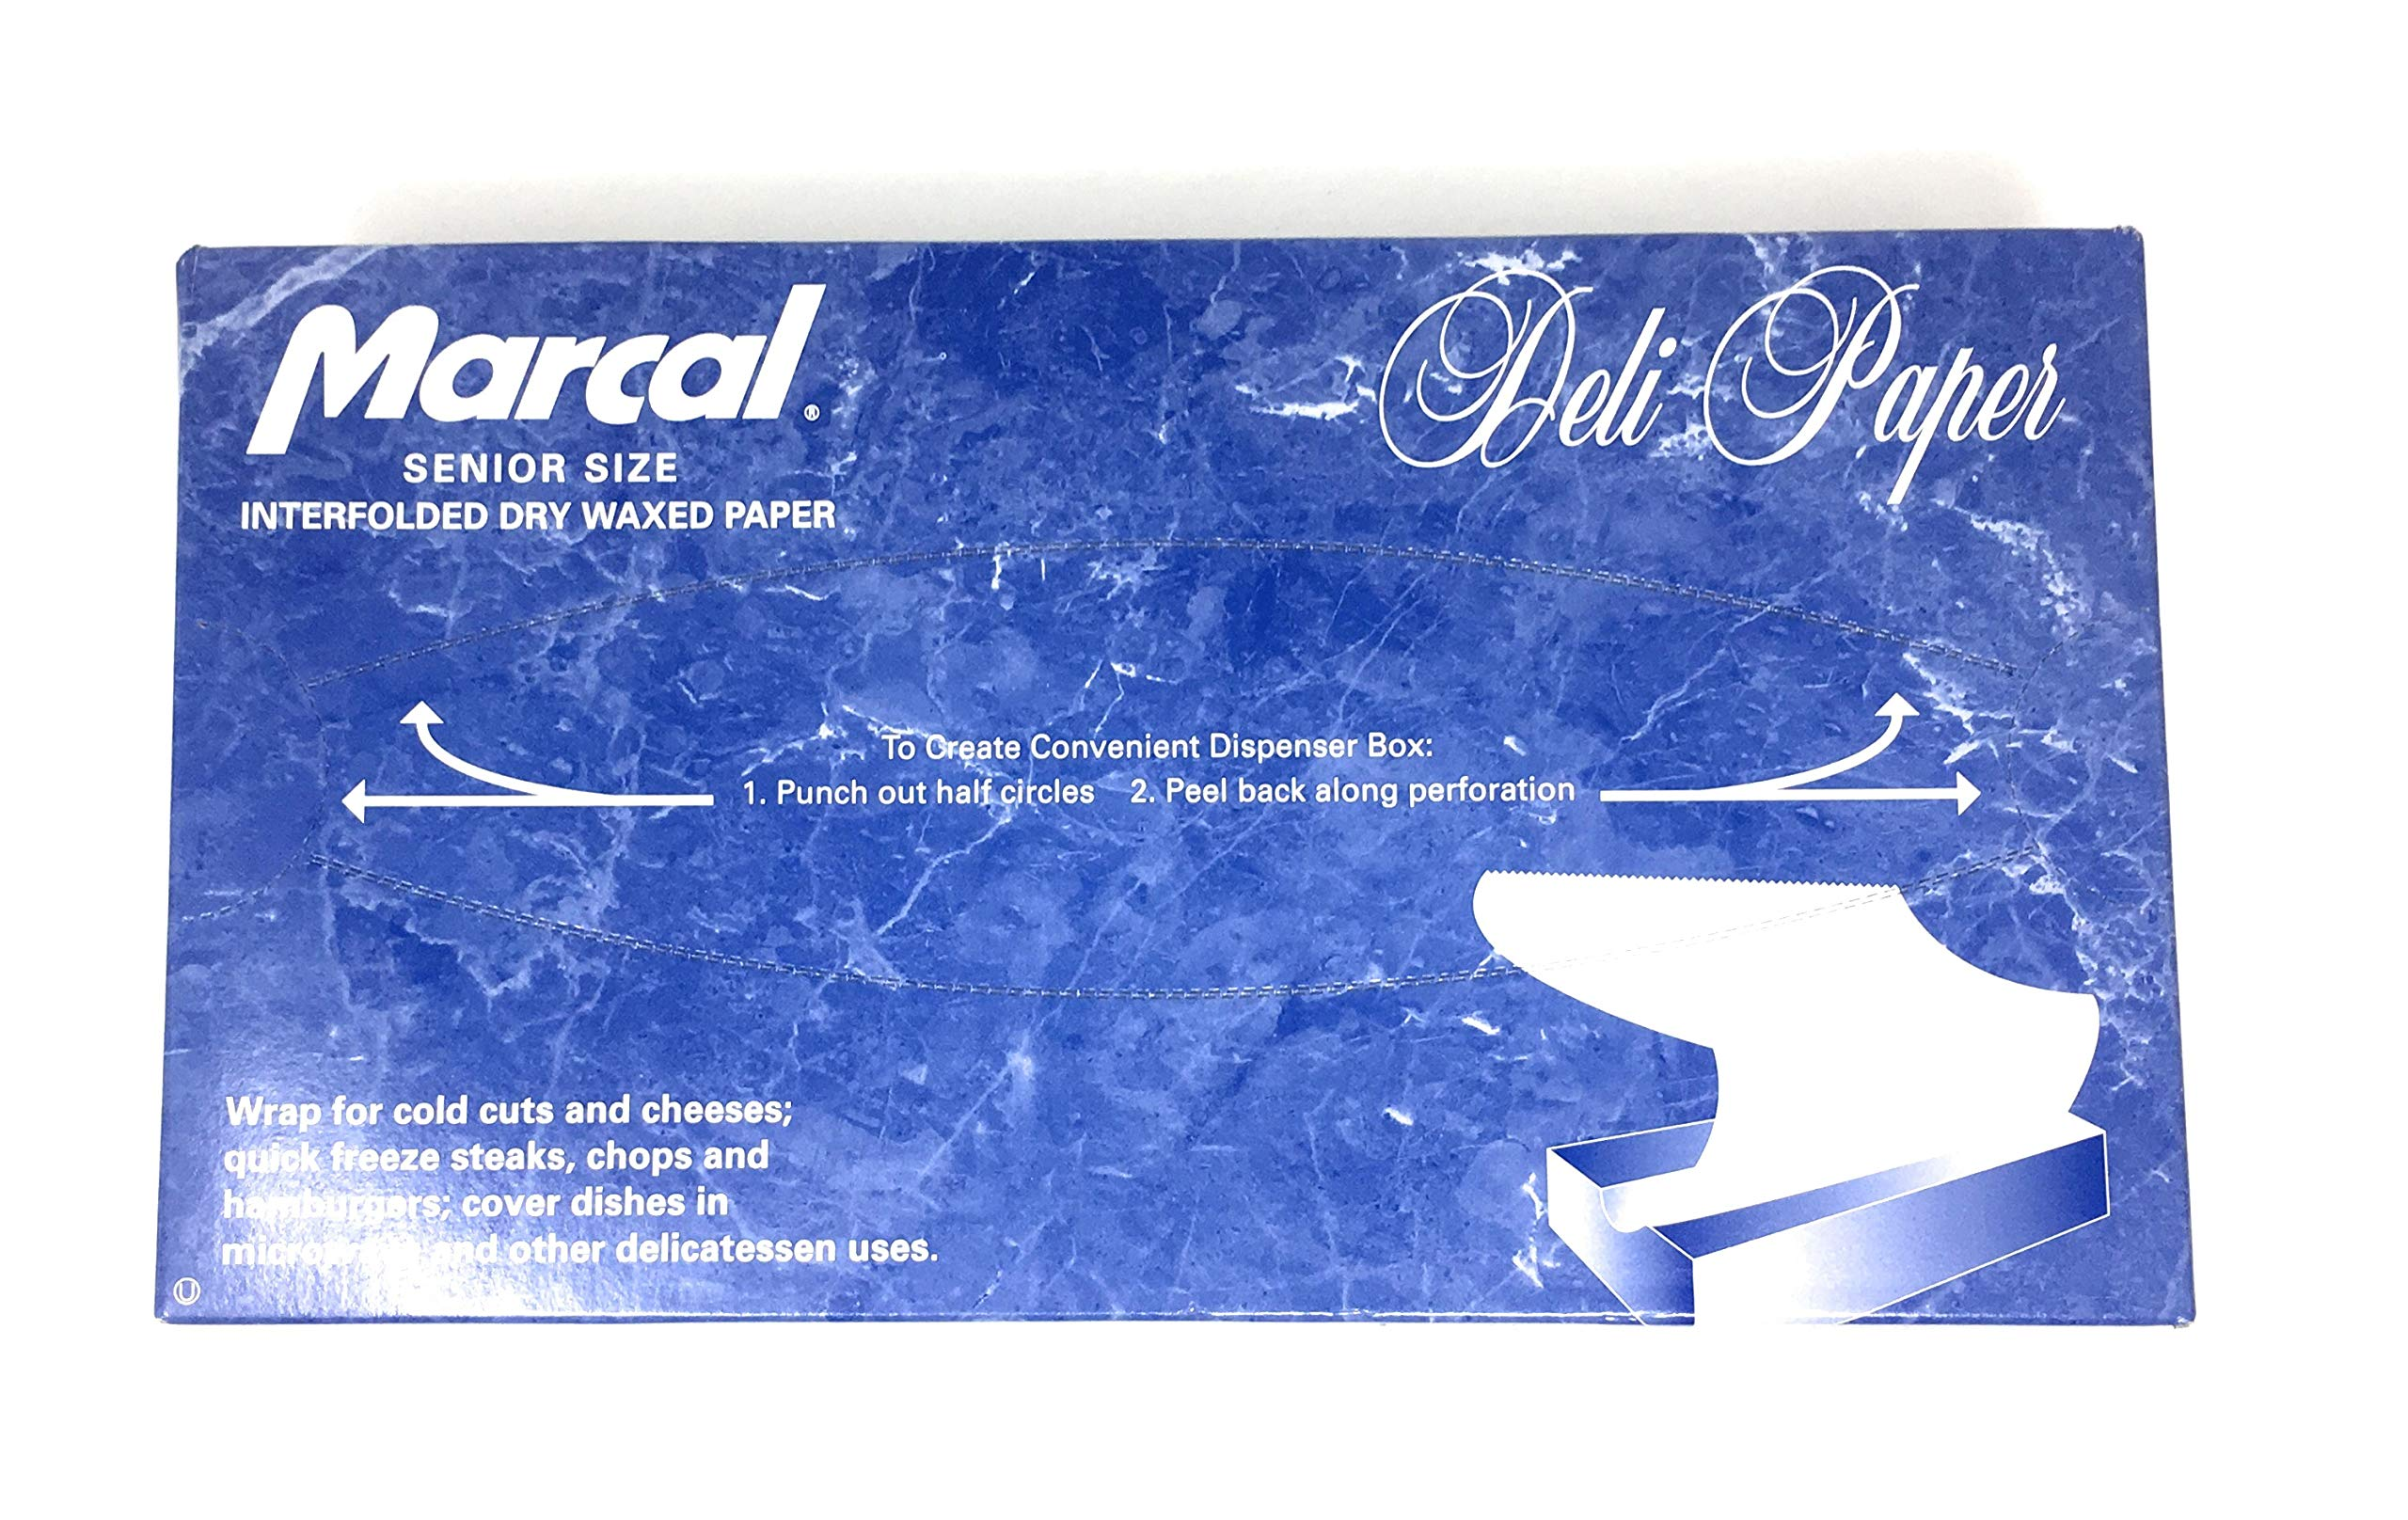 Marcal Deli Wrap Interfolded Wax Paper. Dry Waxed Food Liner Senior Size 10 Inch by 10.75 Inch. Total of 2500 Sheets. (5 Packs of 500 Sheets) by Marcal Co. (Image #5)